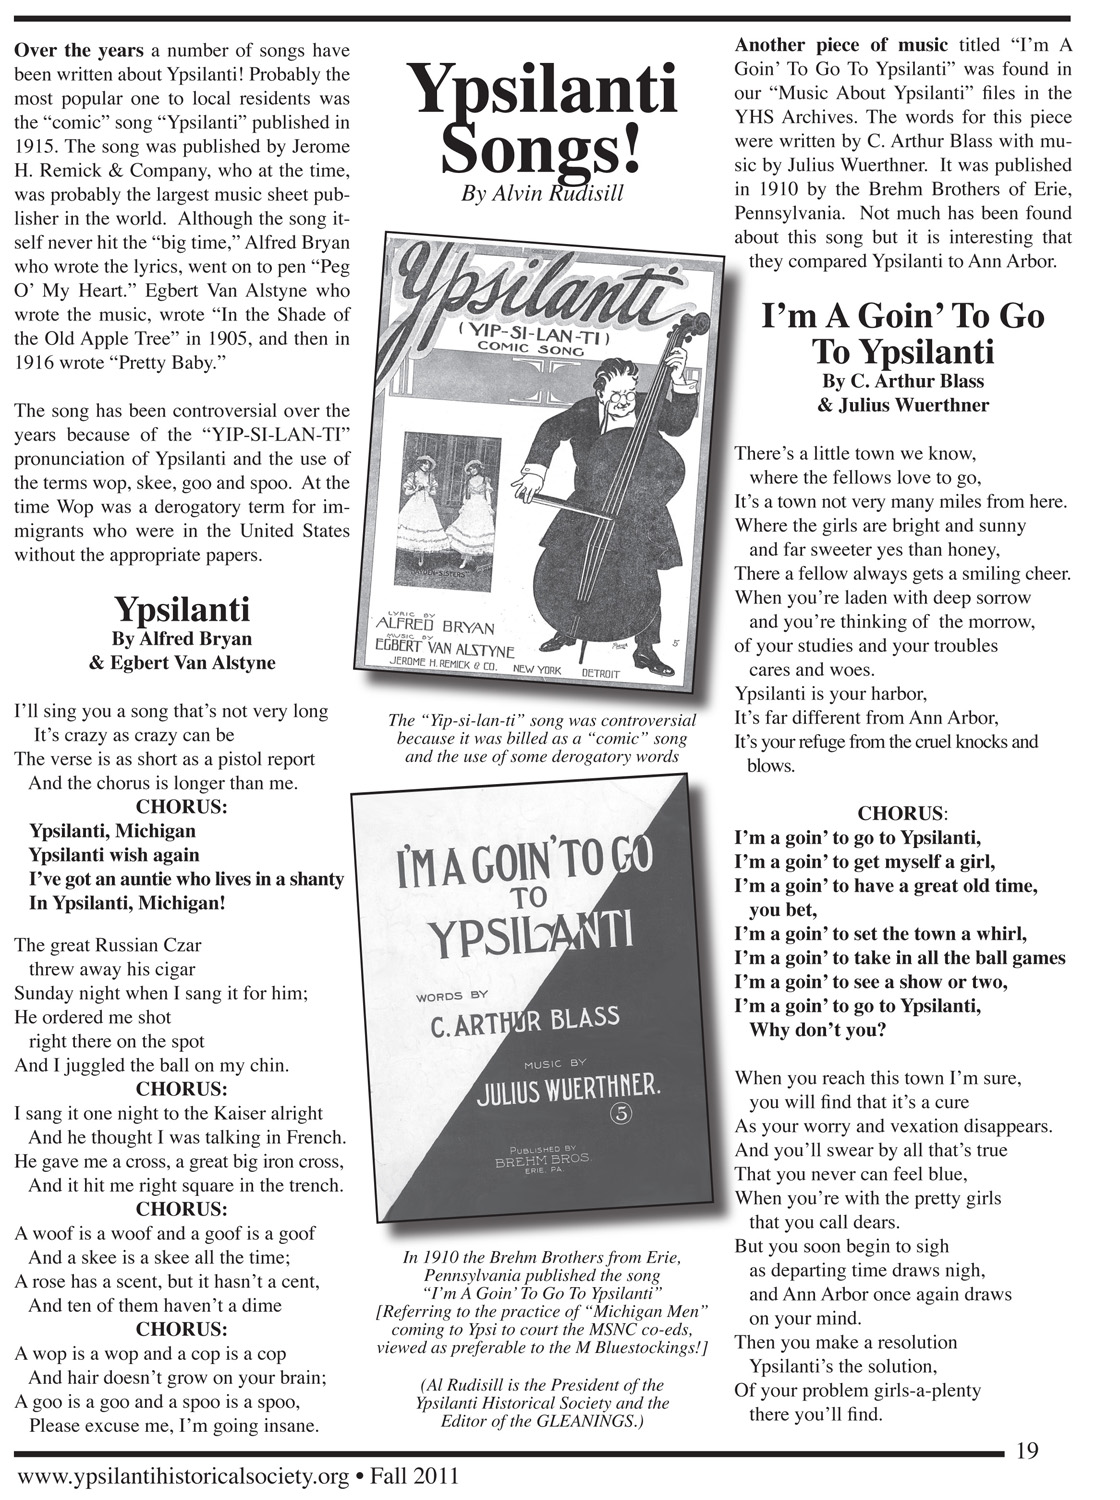 Ypsilanti Songs!  image